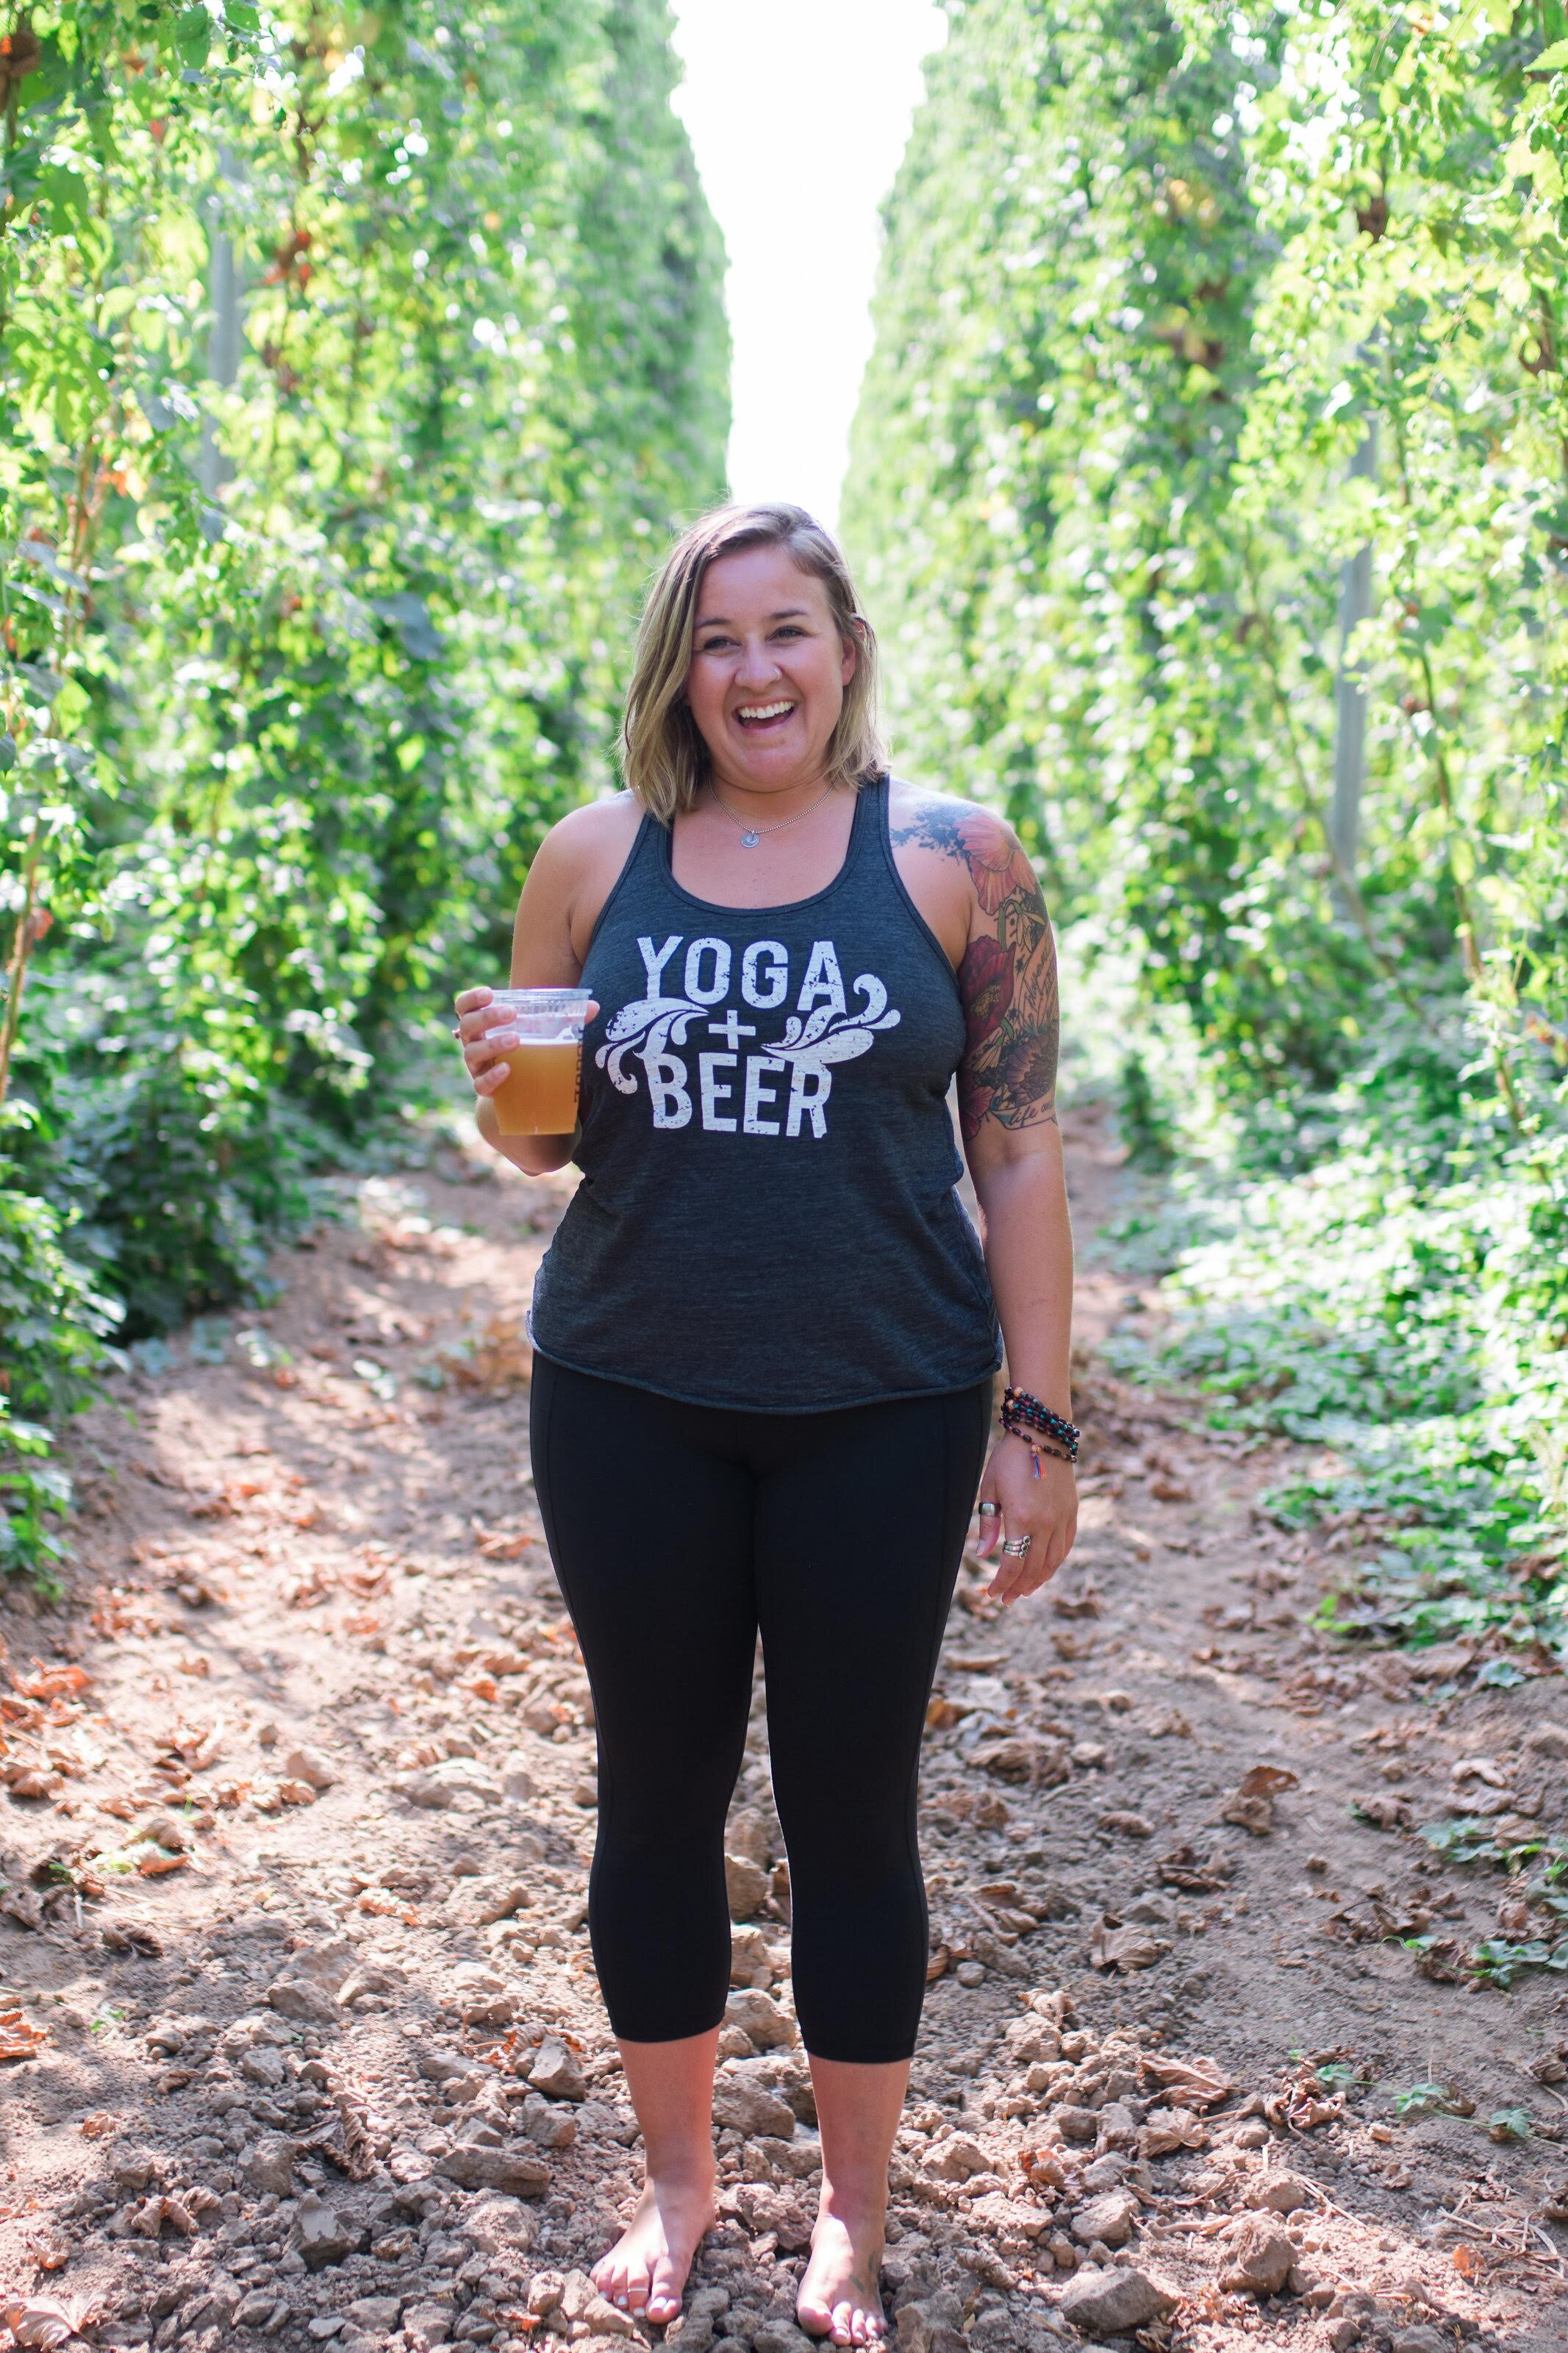 Yoga Beer Teachers Yoga Classes In Oregon And Washington Breweries Yoga Beer